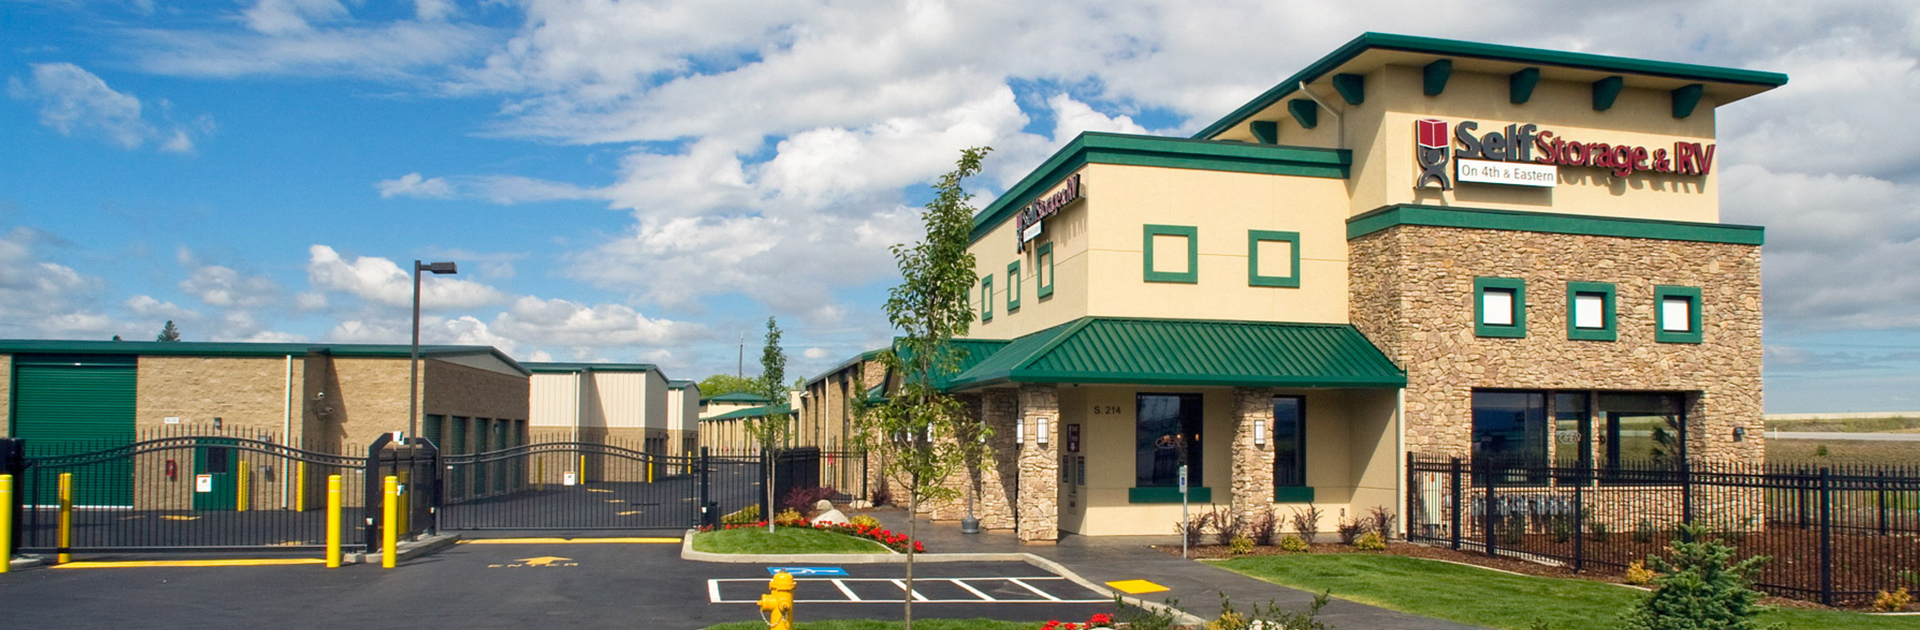 Self Storage Spokane Gated